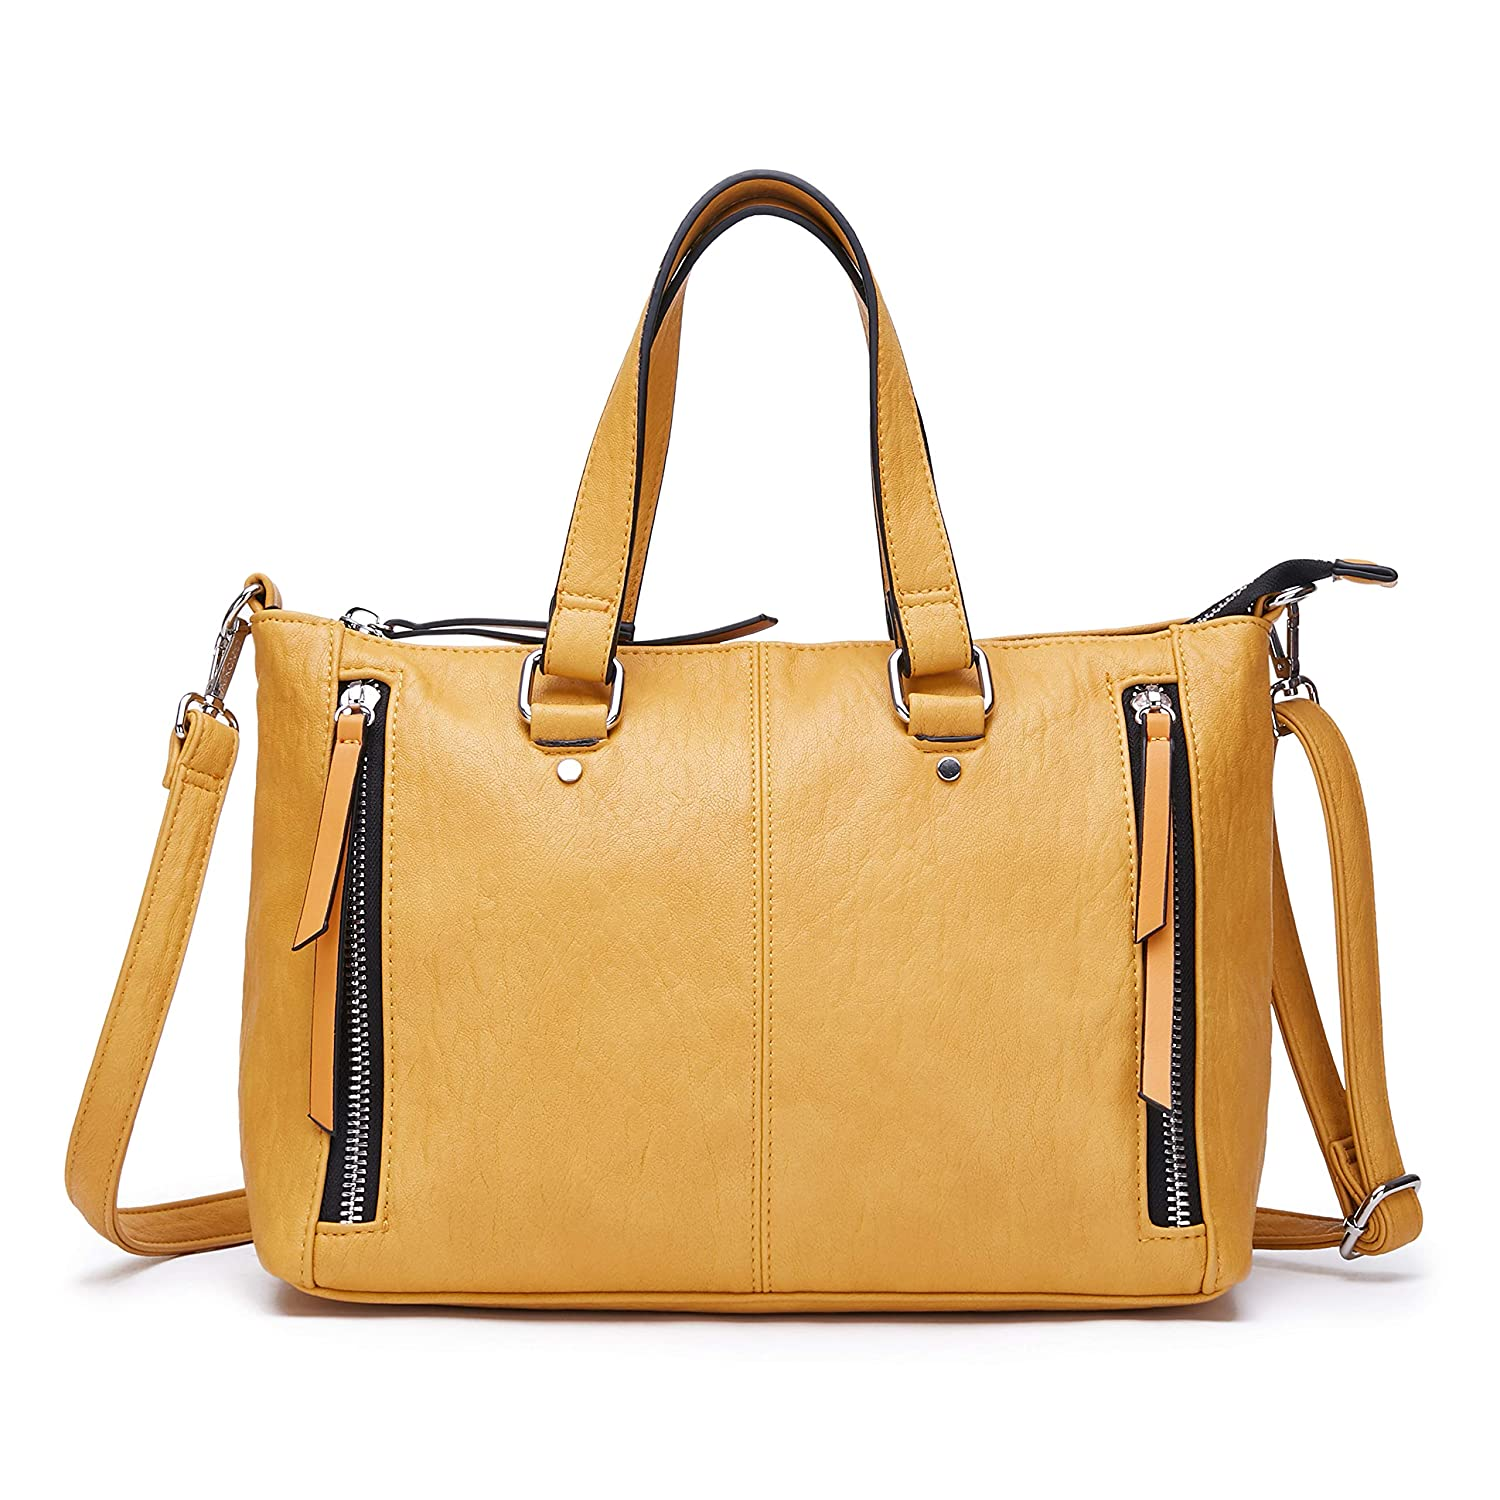 a0bd2607958d Amazon.com  AFKOMST Yellow Purses and Handbags for Women Top Handle Tote  Soft Shoulder Bags and Satchels for Work  Shoes